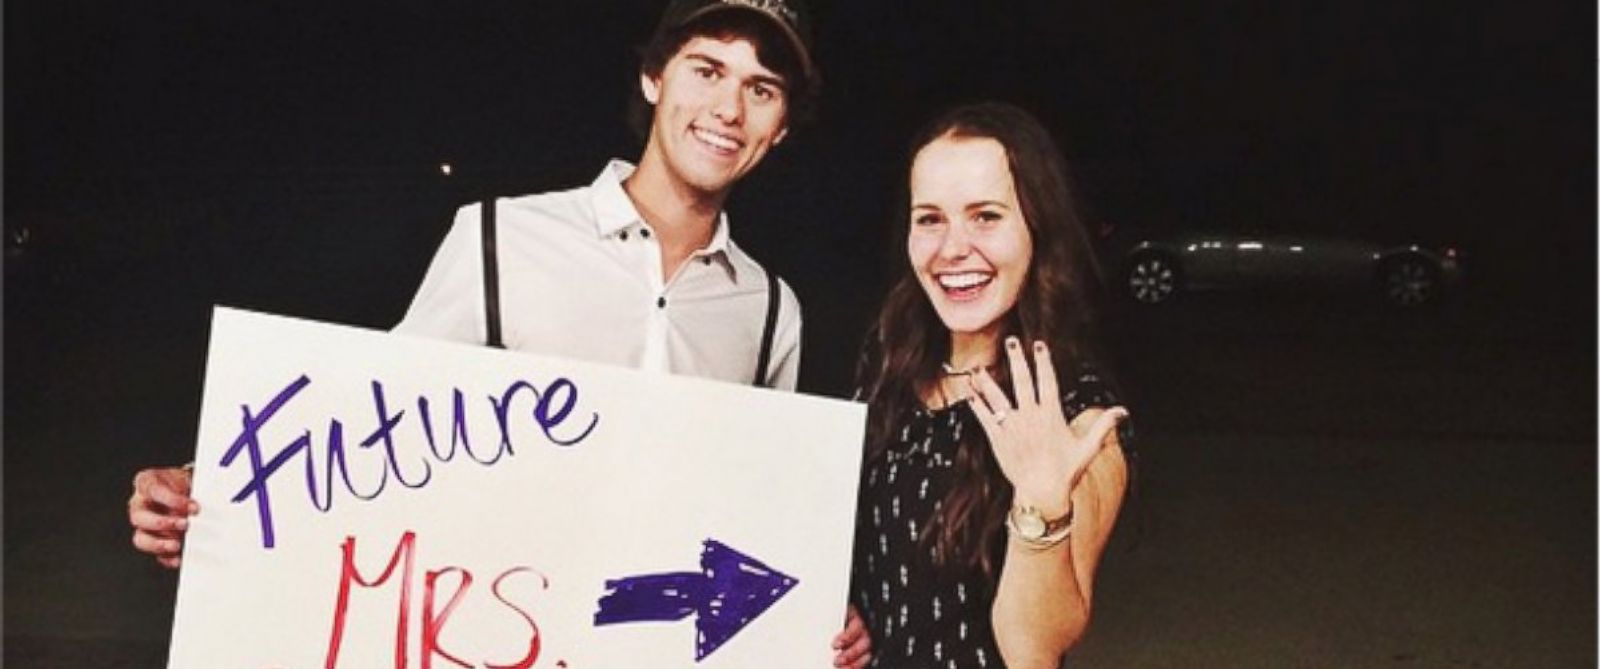 PHOTO: John Luke Robertson posted this photo of himself and his fiance Mary Kate McEacharn